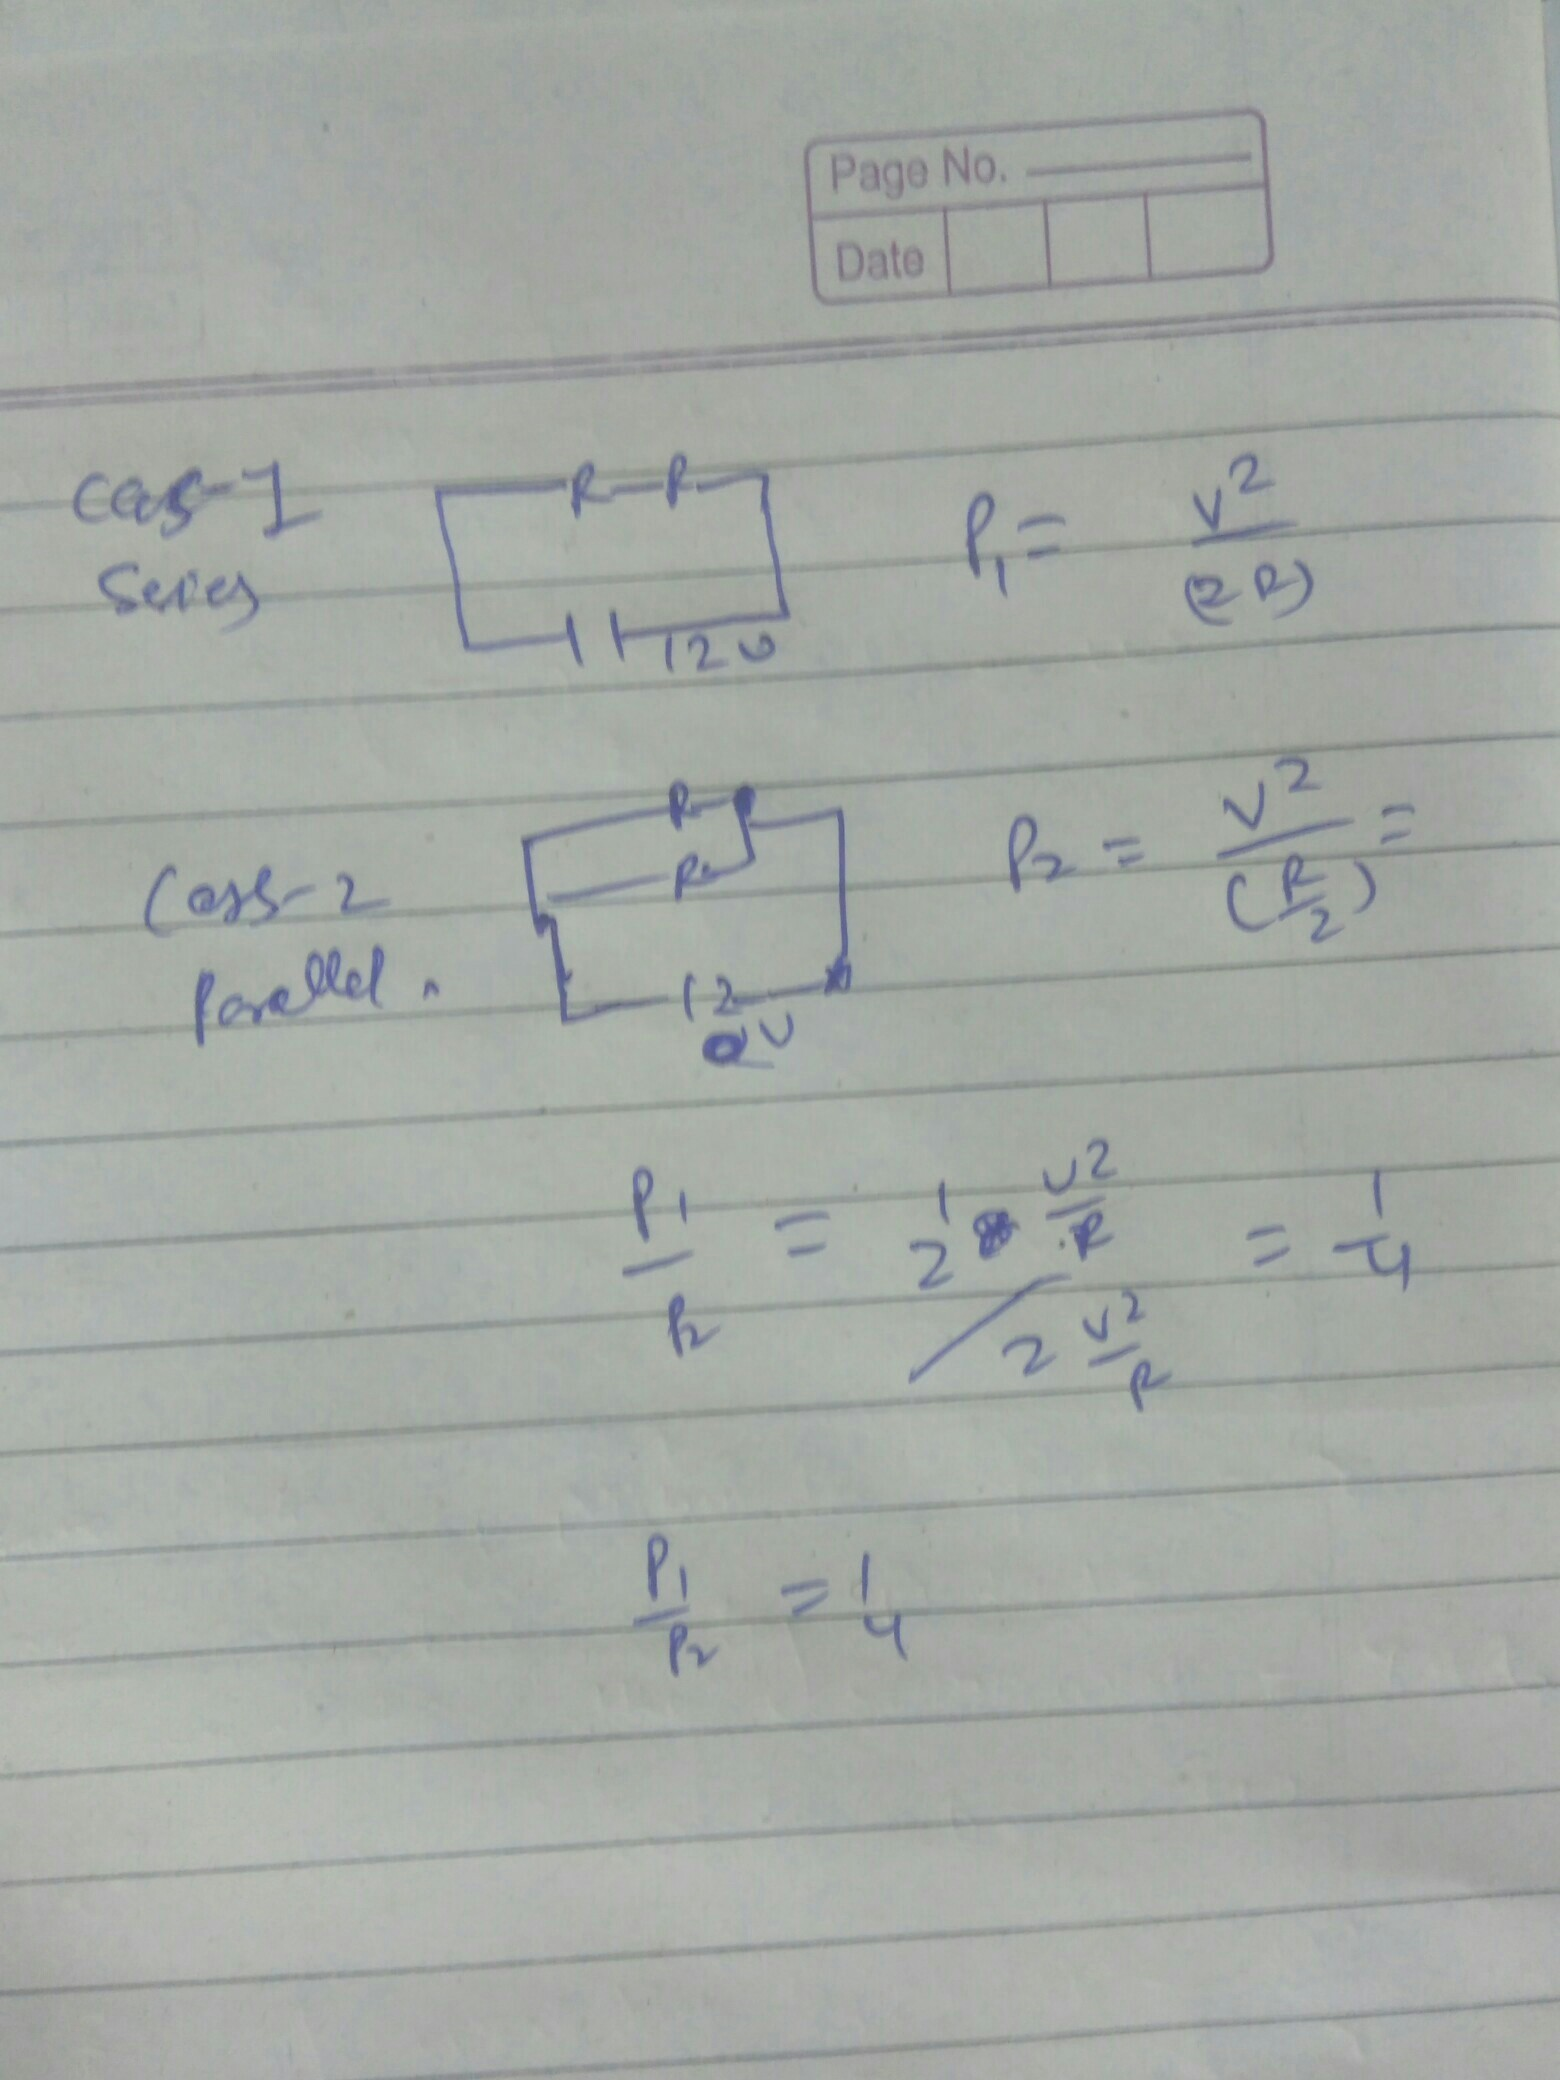 Two Identical Resistors Each Of Resistance 2 Ohm Are